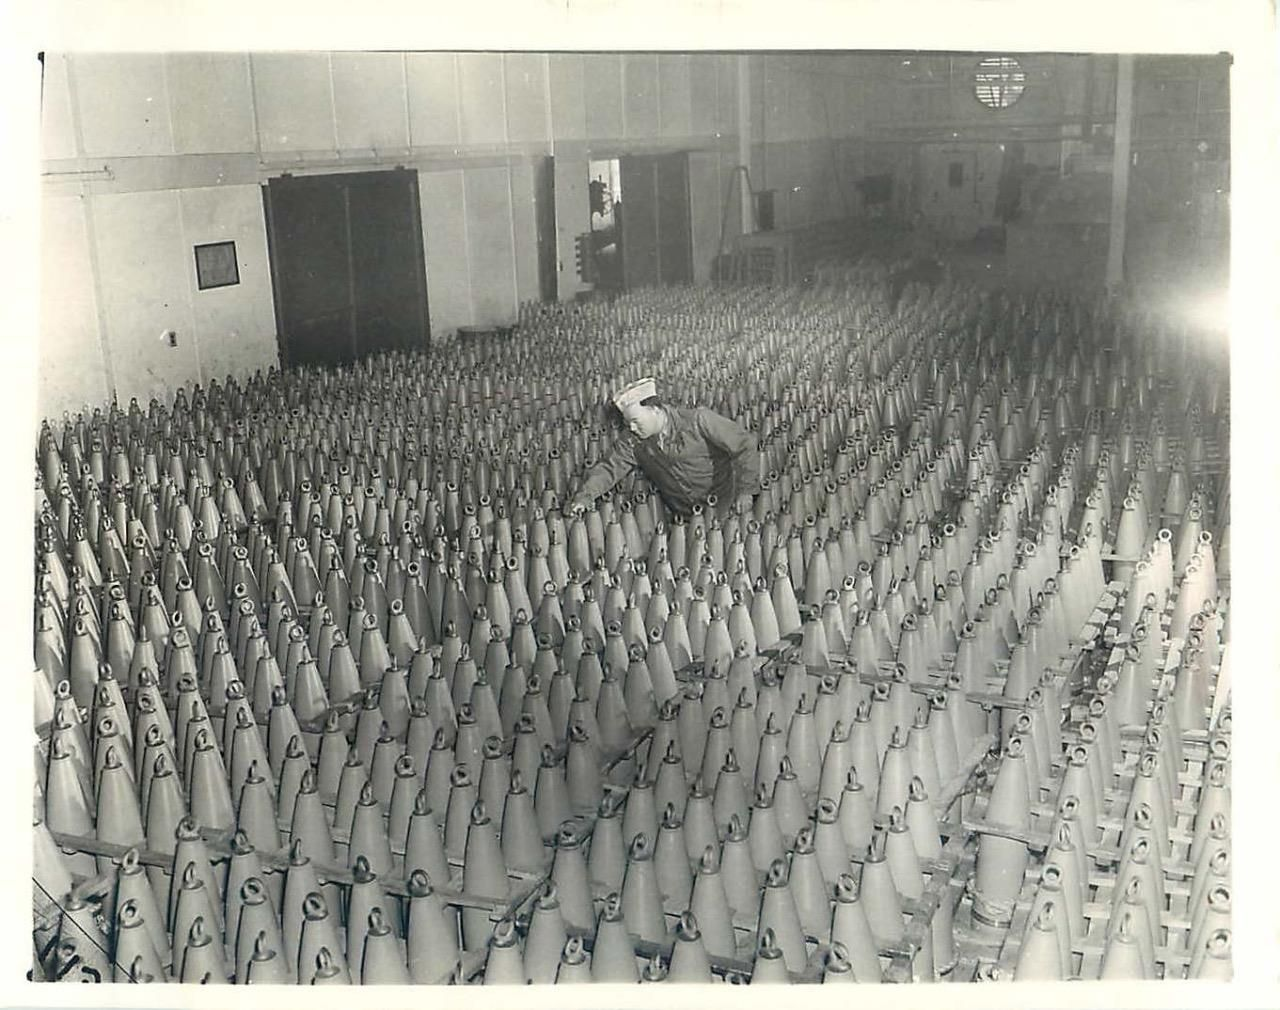 1943- Thousands of shells filled with poison gas at an eastern arsenal ready for shipment in the event Axis forces resort to chemical warfare.